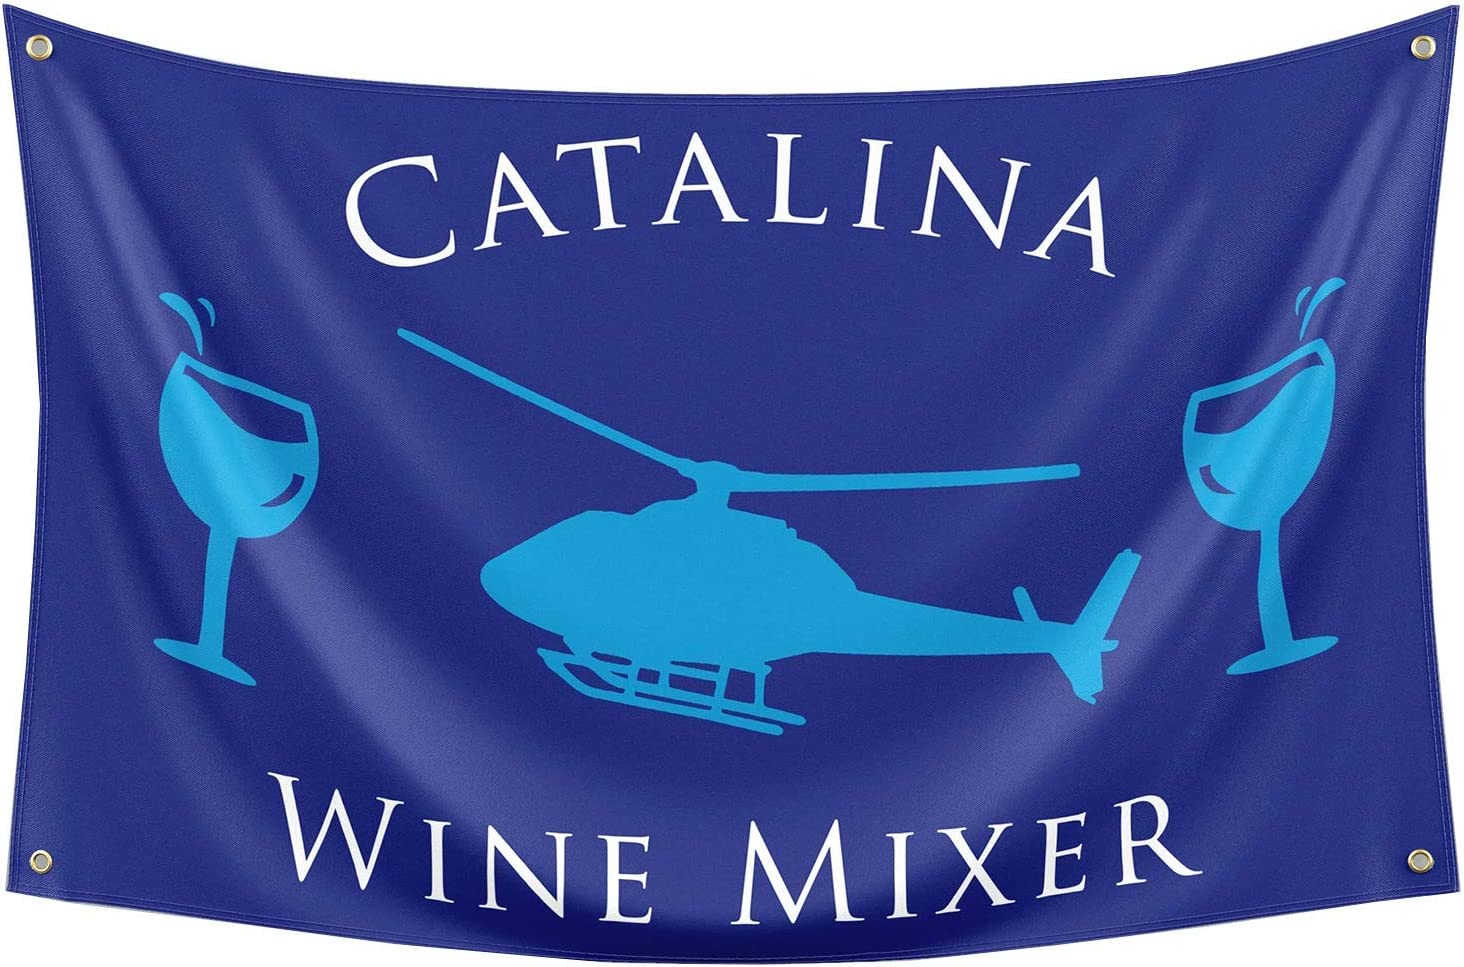 Probsin Catalina Wine Mixer Flag,3x5 Feet Banner,Funny Poster UV Resistance Fading & Durable Man Cave Wall Flag with Brass Grommets for College Dorm Room Decor,Outdoor,Parties,Gift,Tailgates